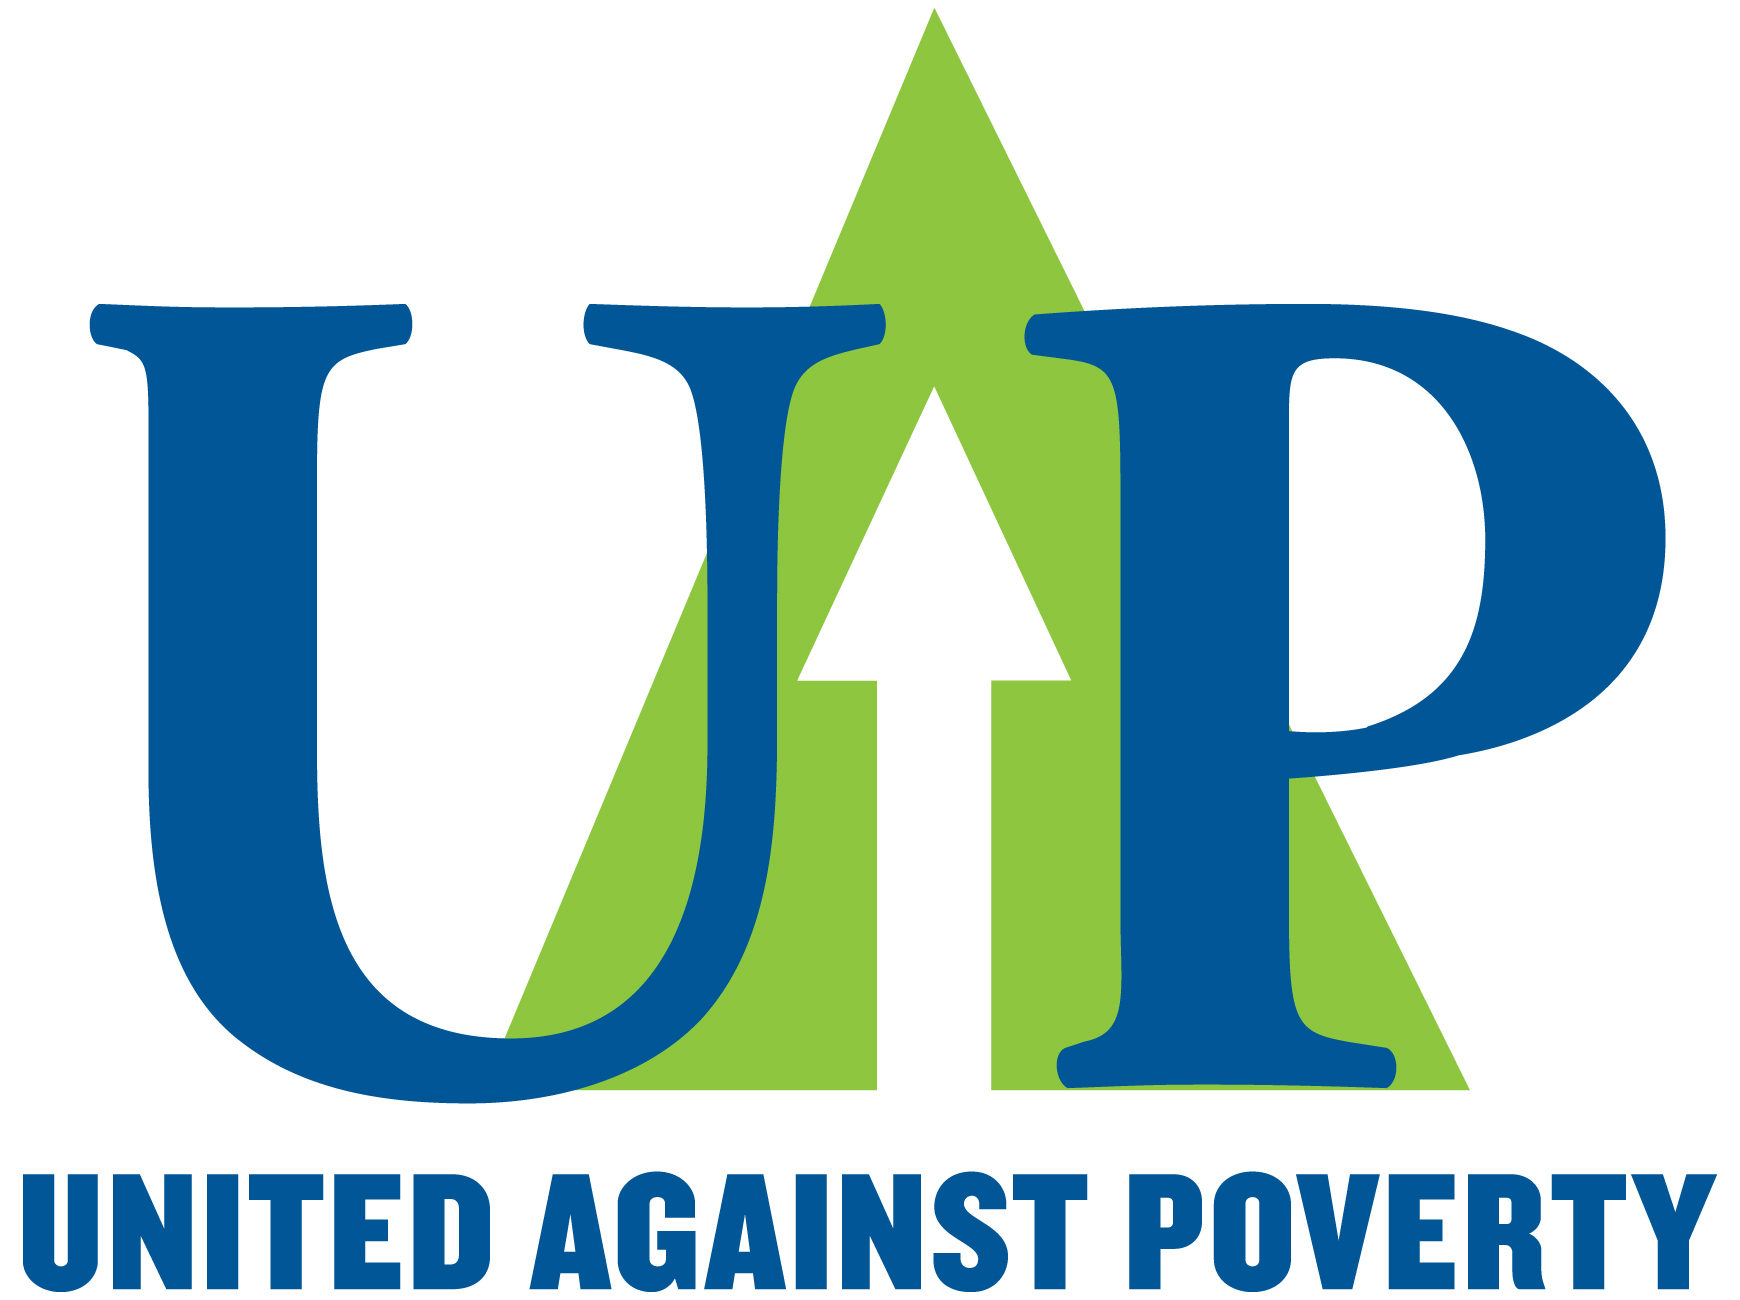 He Got Up 2017 Welcomes United Against Poverty!